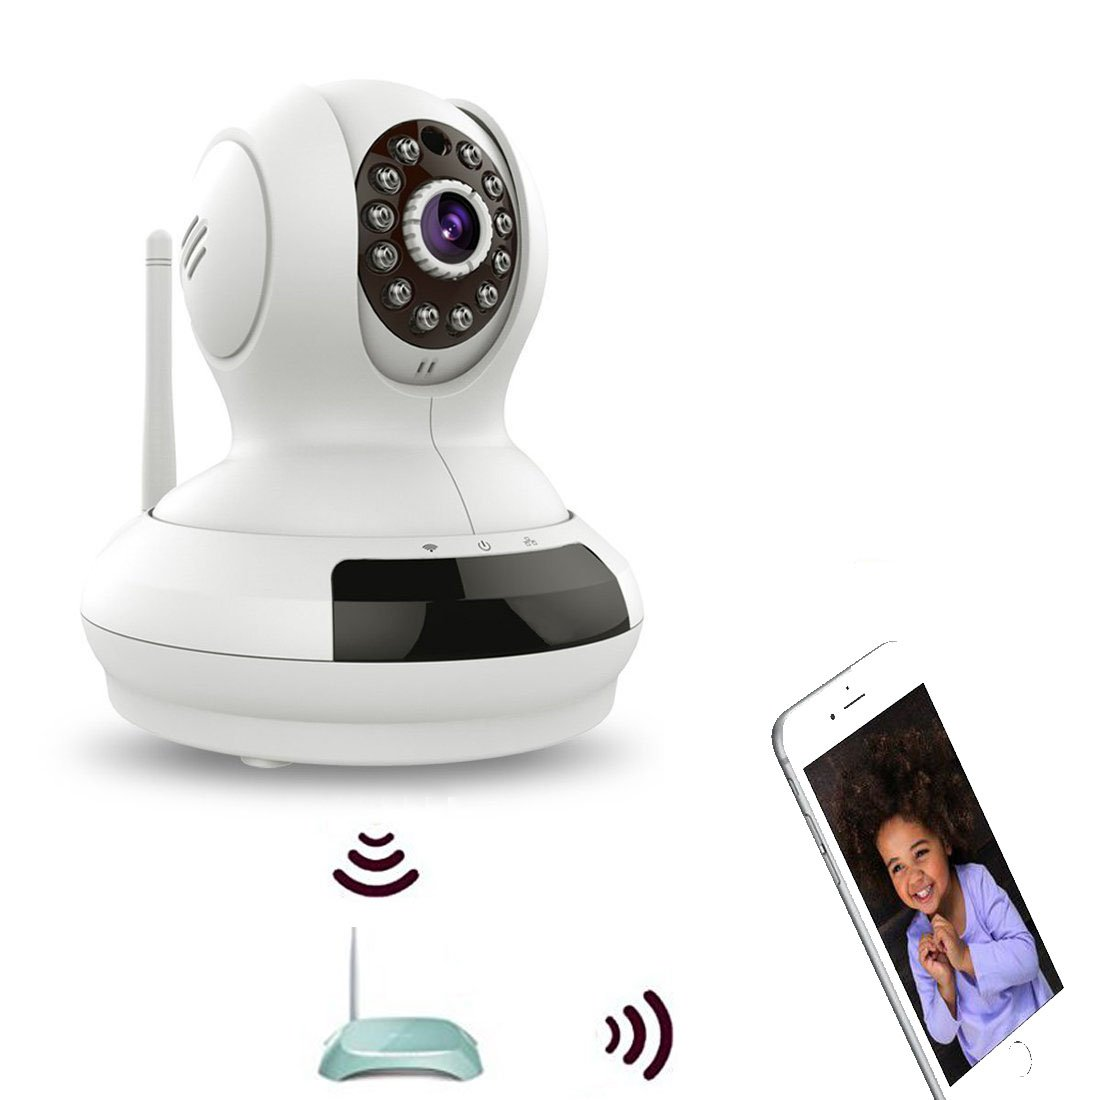 1080P WiFi IP Security Camera,Wireless Baby Monitor,Pet Camera w/ 2 Way Audio Talkback Pan Tilt Night Version Motion Detection,HD P2P Webcam for Indoor Outdoor Home Office w/Smart Phone PC APP (368)